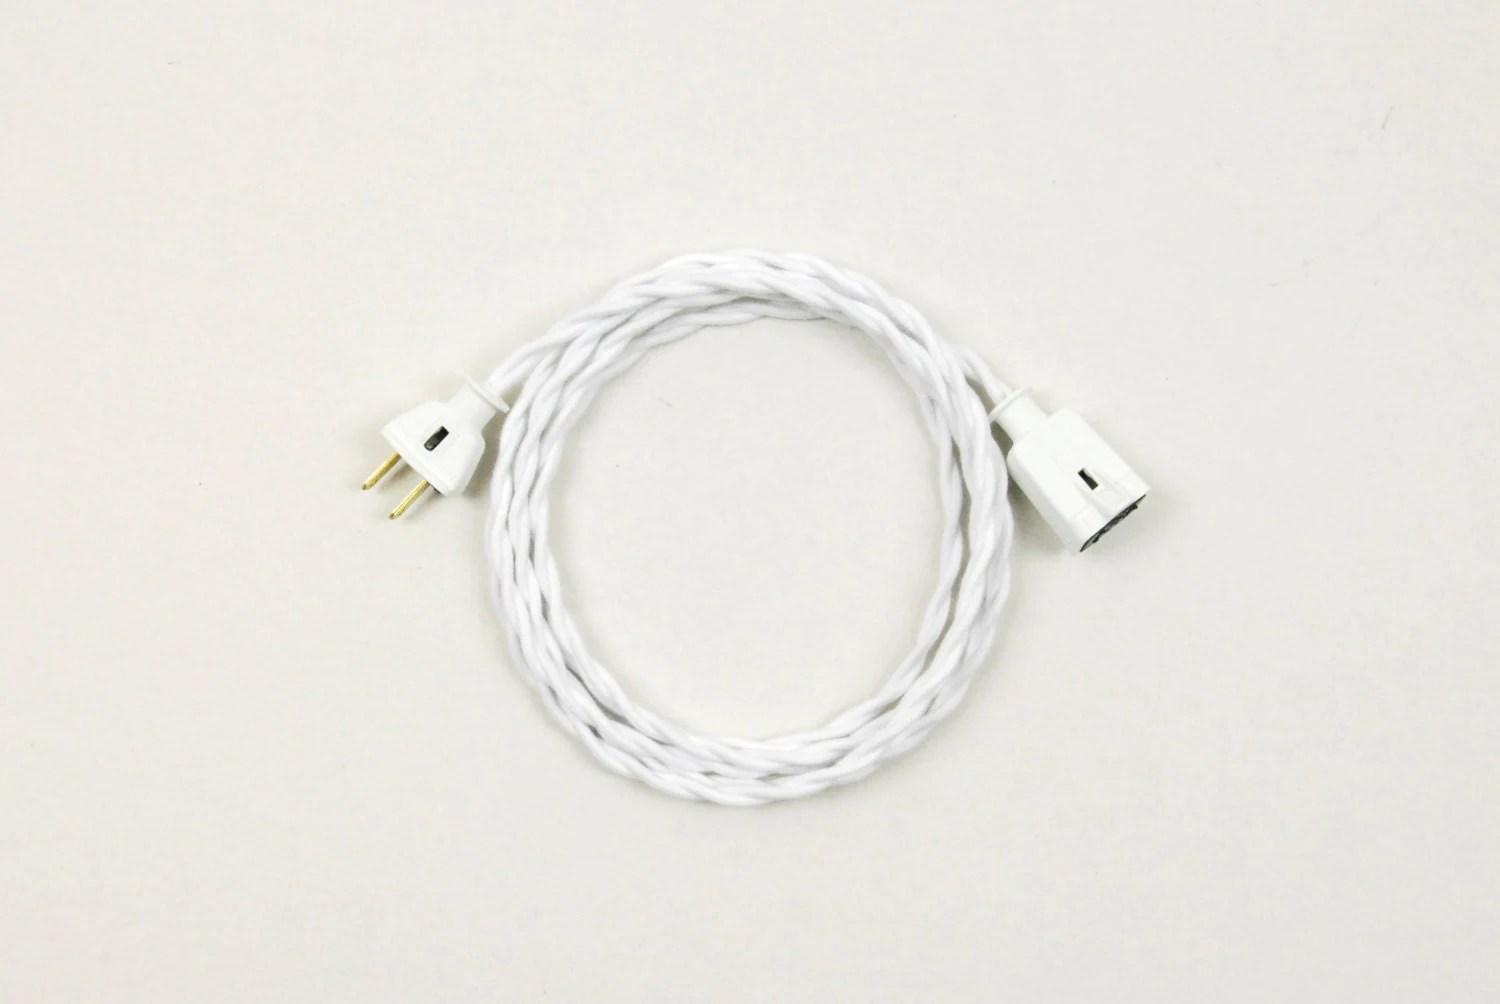 Cloth Covered Extension Cord Twisted Cotton